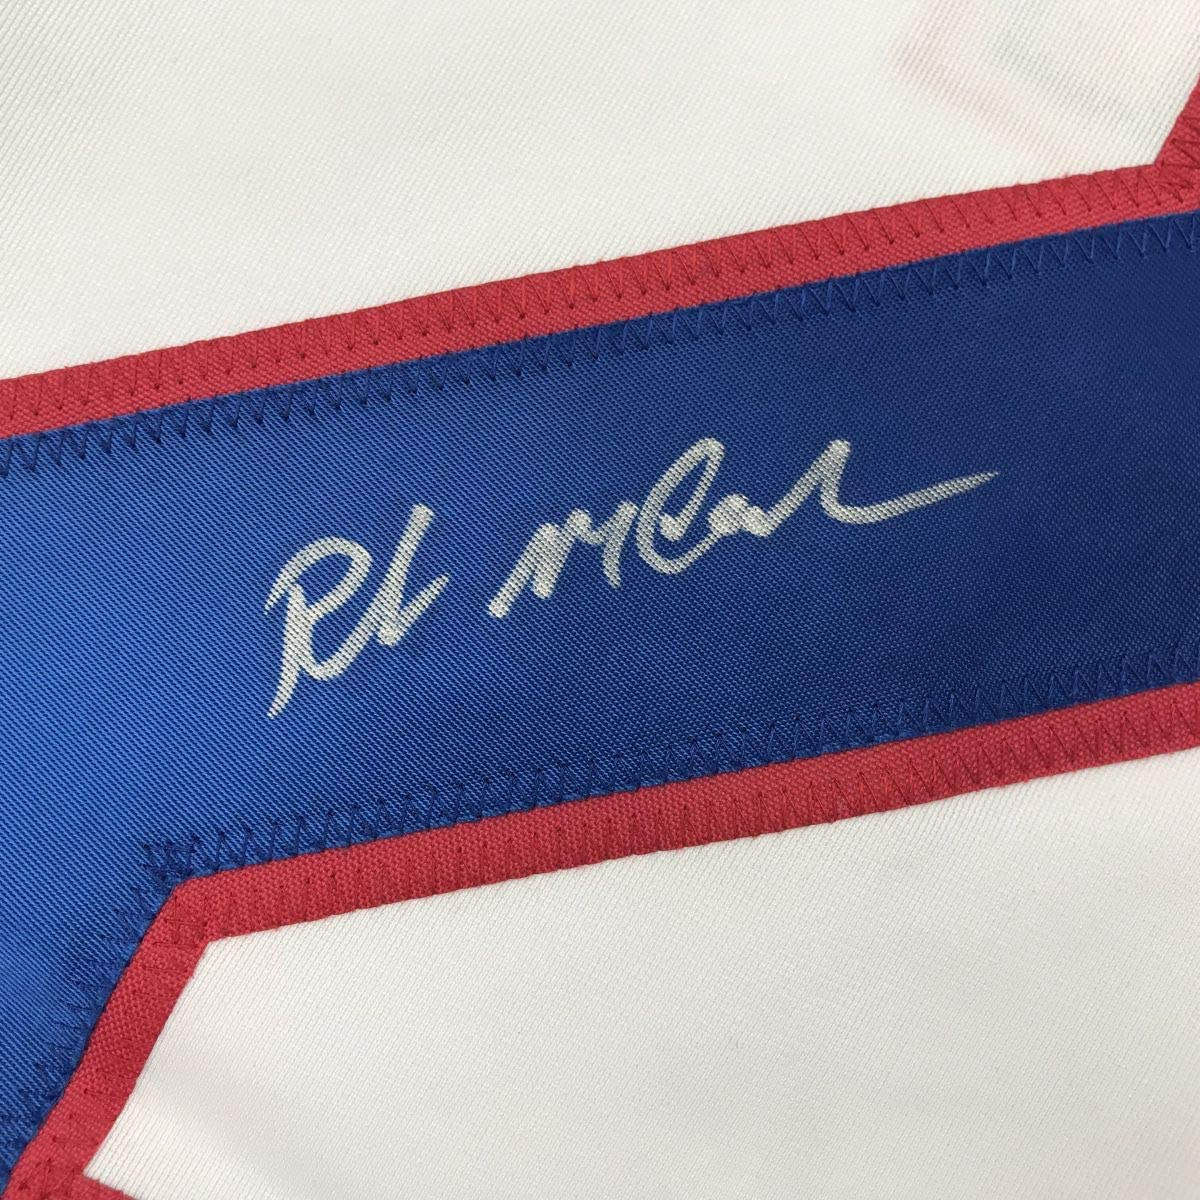 Autographed//Signed Rob McClanahan White Team USA Miracle On Ice 1980 Olympics Hockey Jersey JSA COA